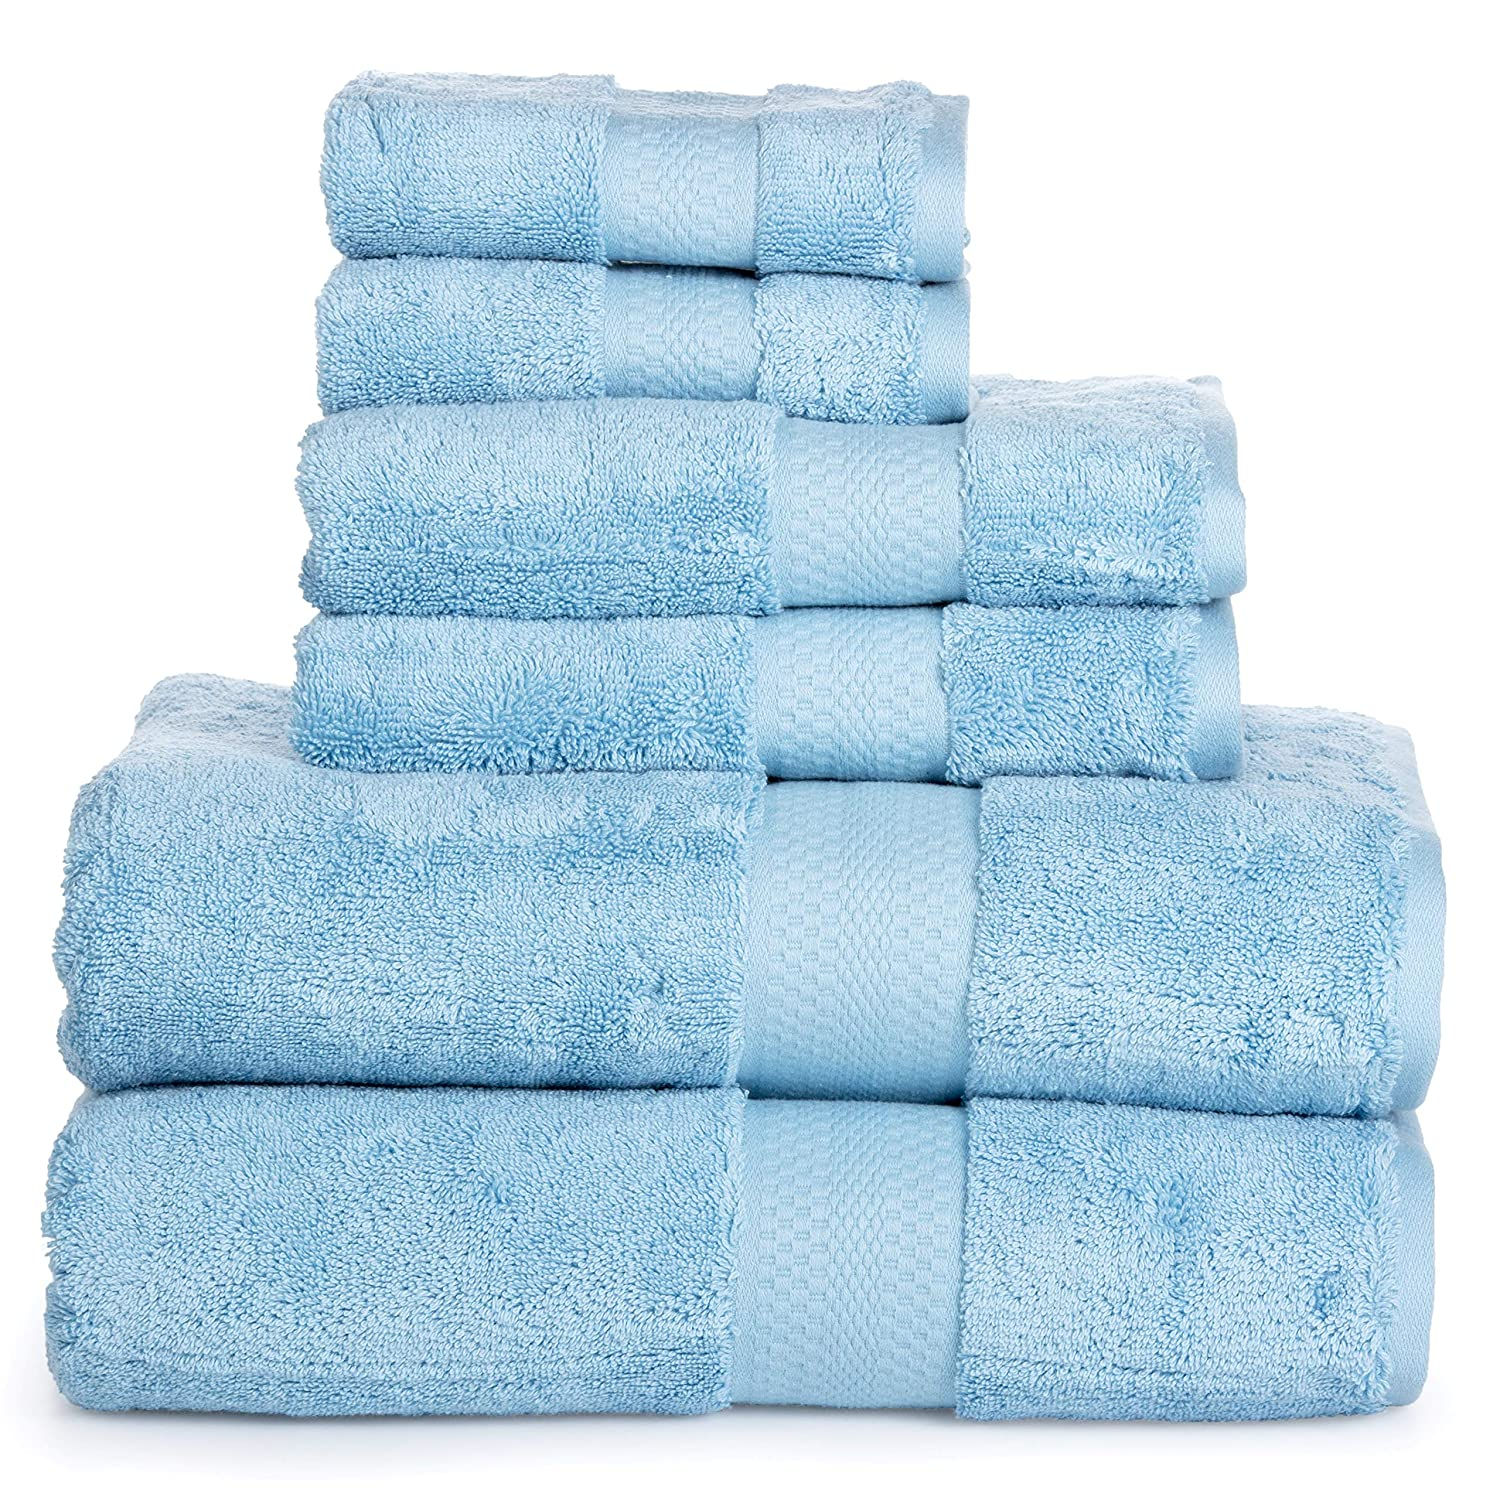 Luxury Cotton Bathroom Bath Towels: 6 Piece Towel Set for Household Bathrooms - Soft Plush and Absorbent Cotton with Double Stitch Hems - Bath / Shower Towels, Hand Towels, and Washcloths - BLACK ISABELLA CROMWELL